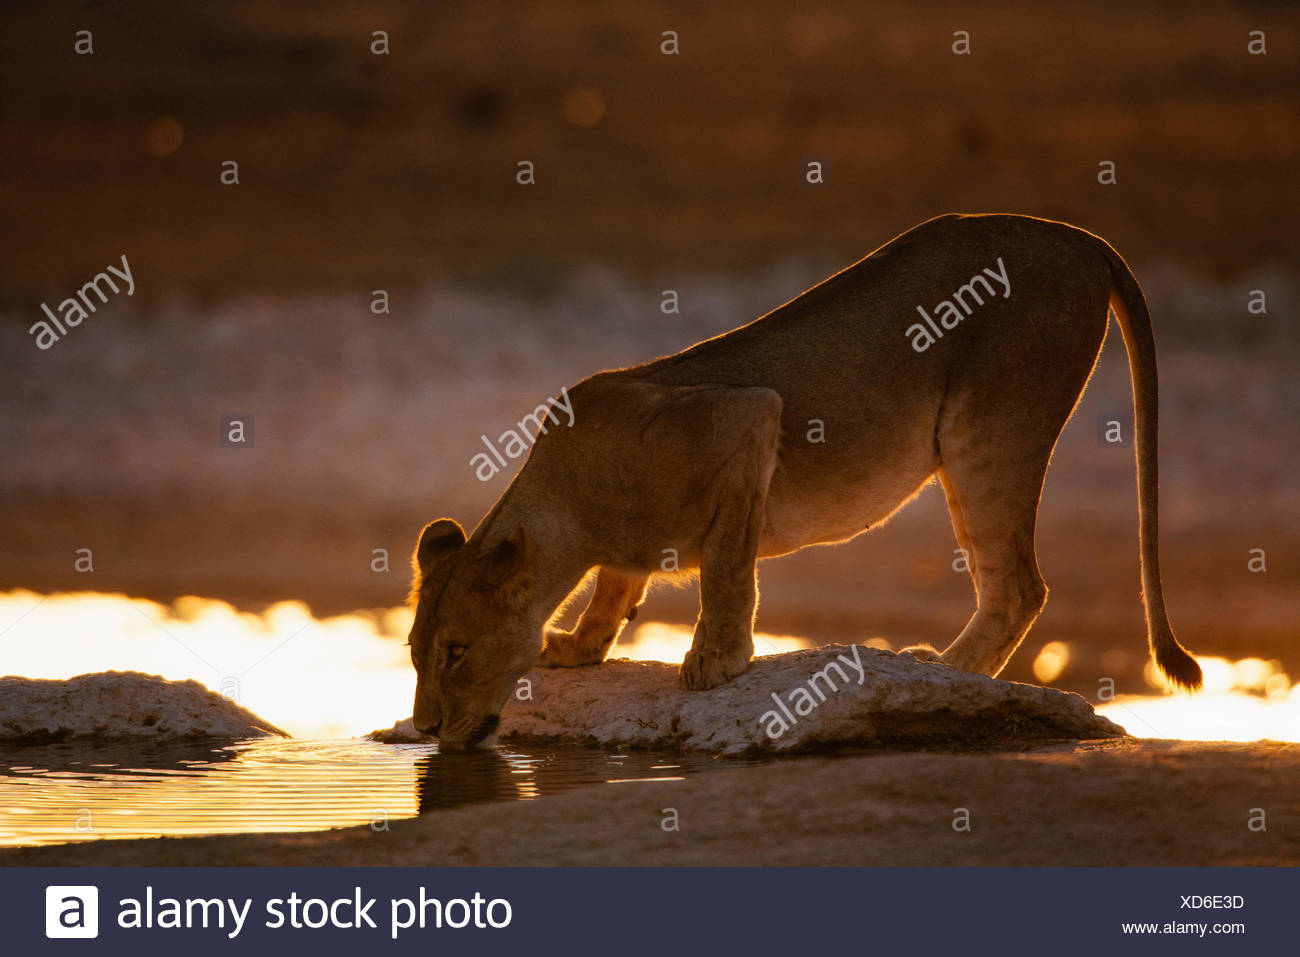 A lioness, Panthera leo, drinking at a waterhole at sunrise. - Stock Image